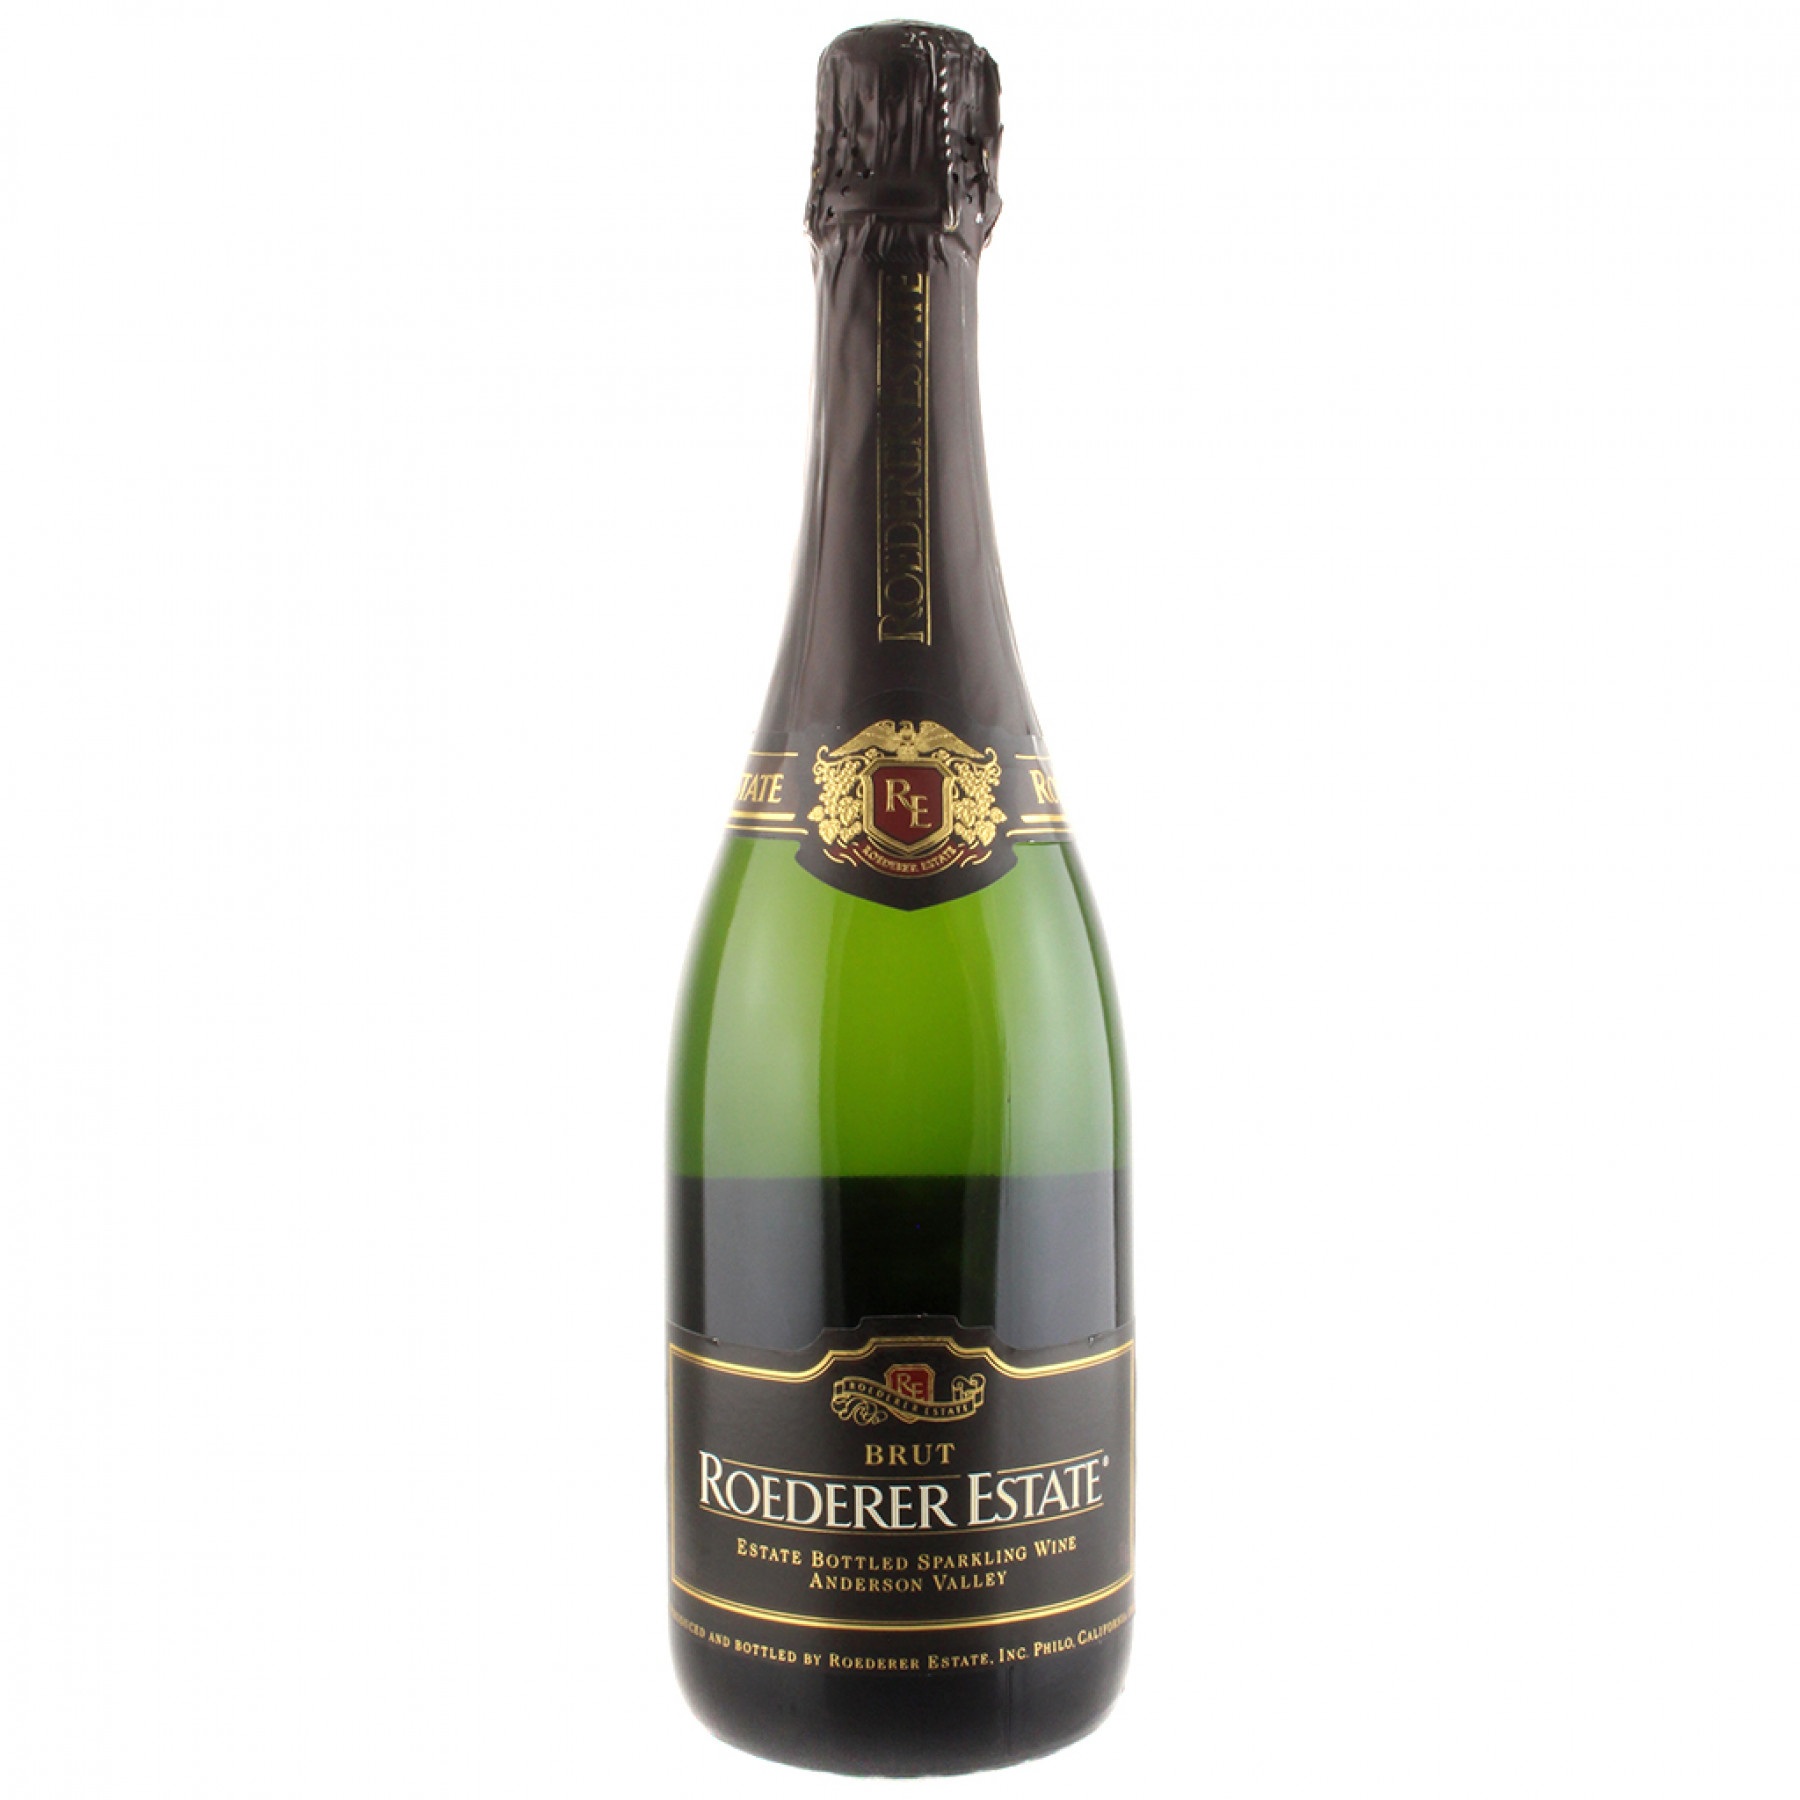 Anderson Valley Sparkling Brut NV Roederer Estate  750ml